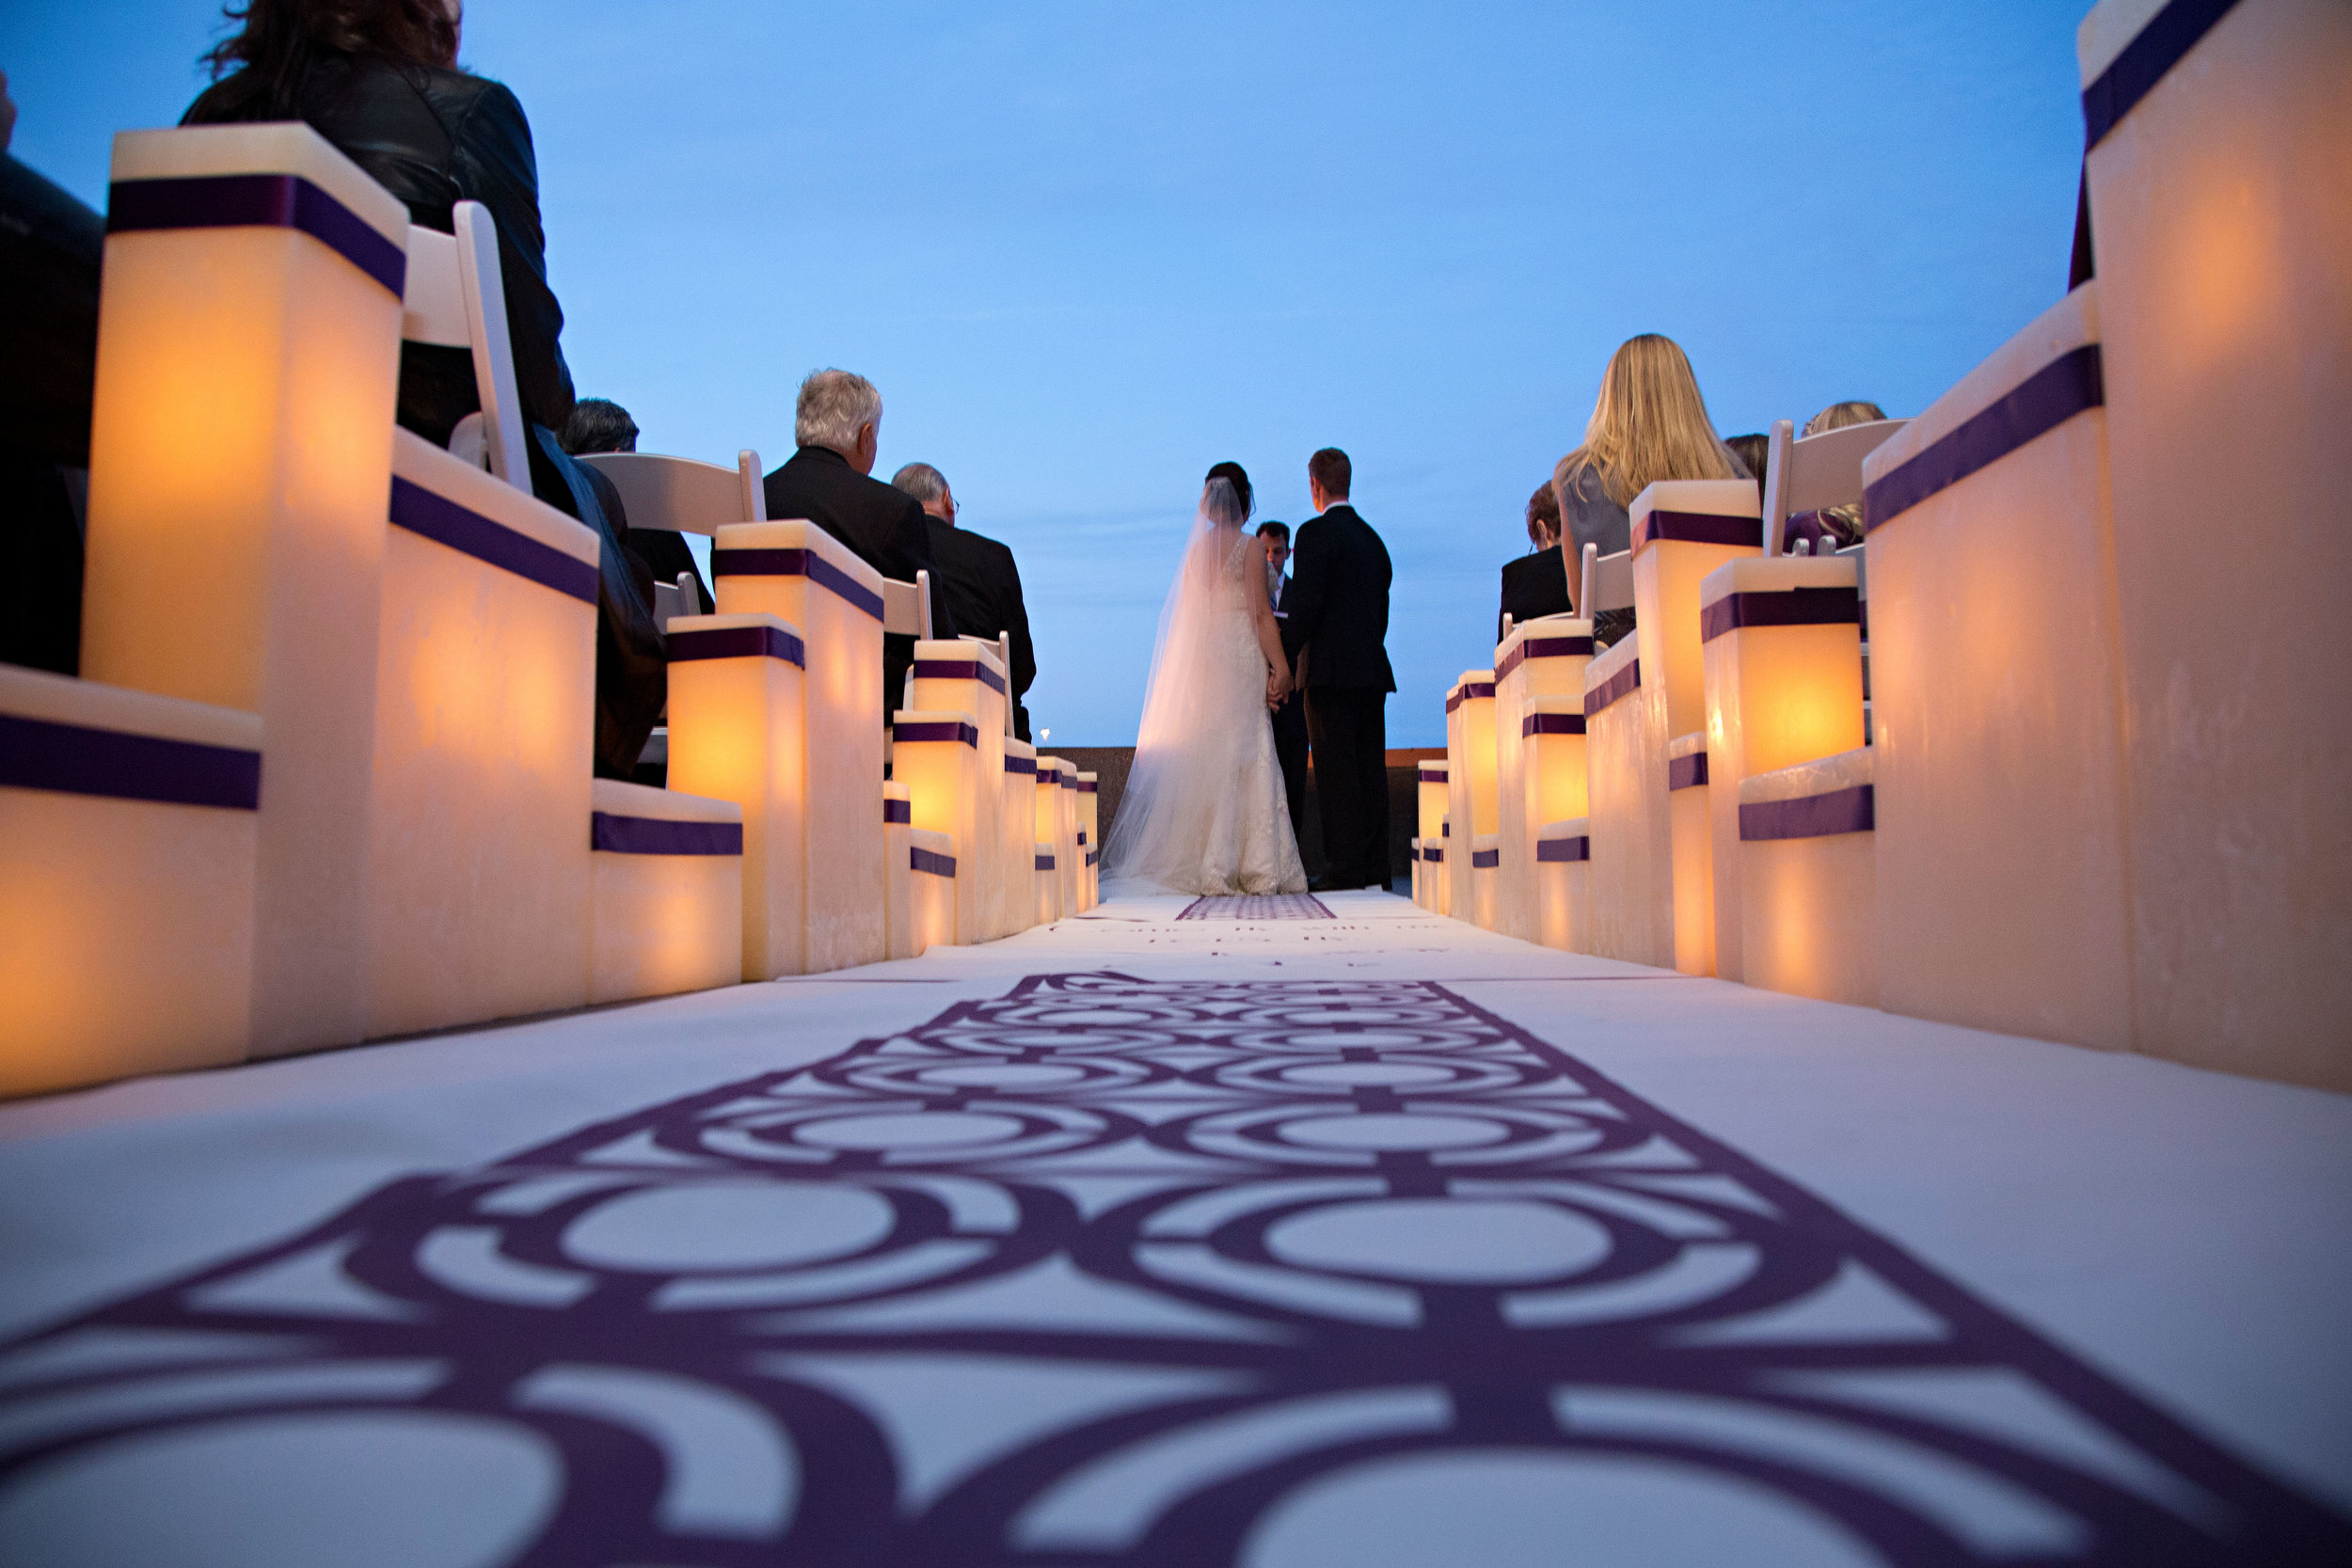 14 bride and groom at ceremony ceremony at dusk bride and groom exchanging vows O Grace Photography Life Design Events.jpg